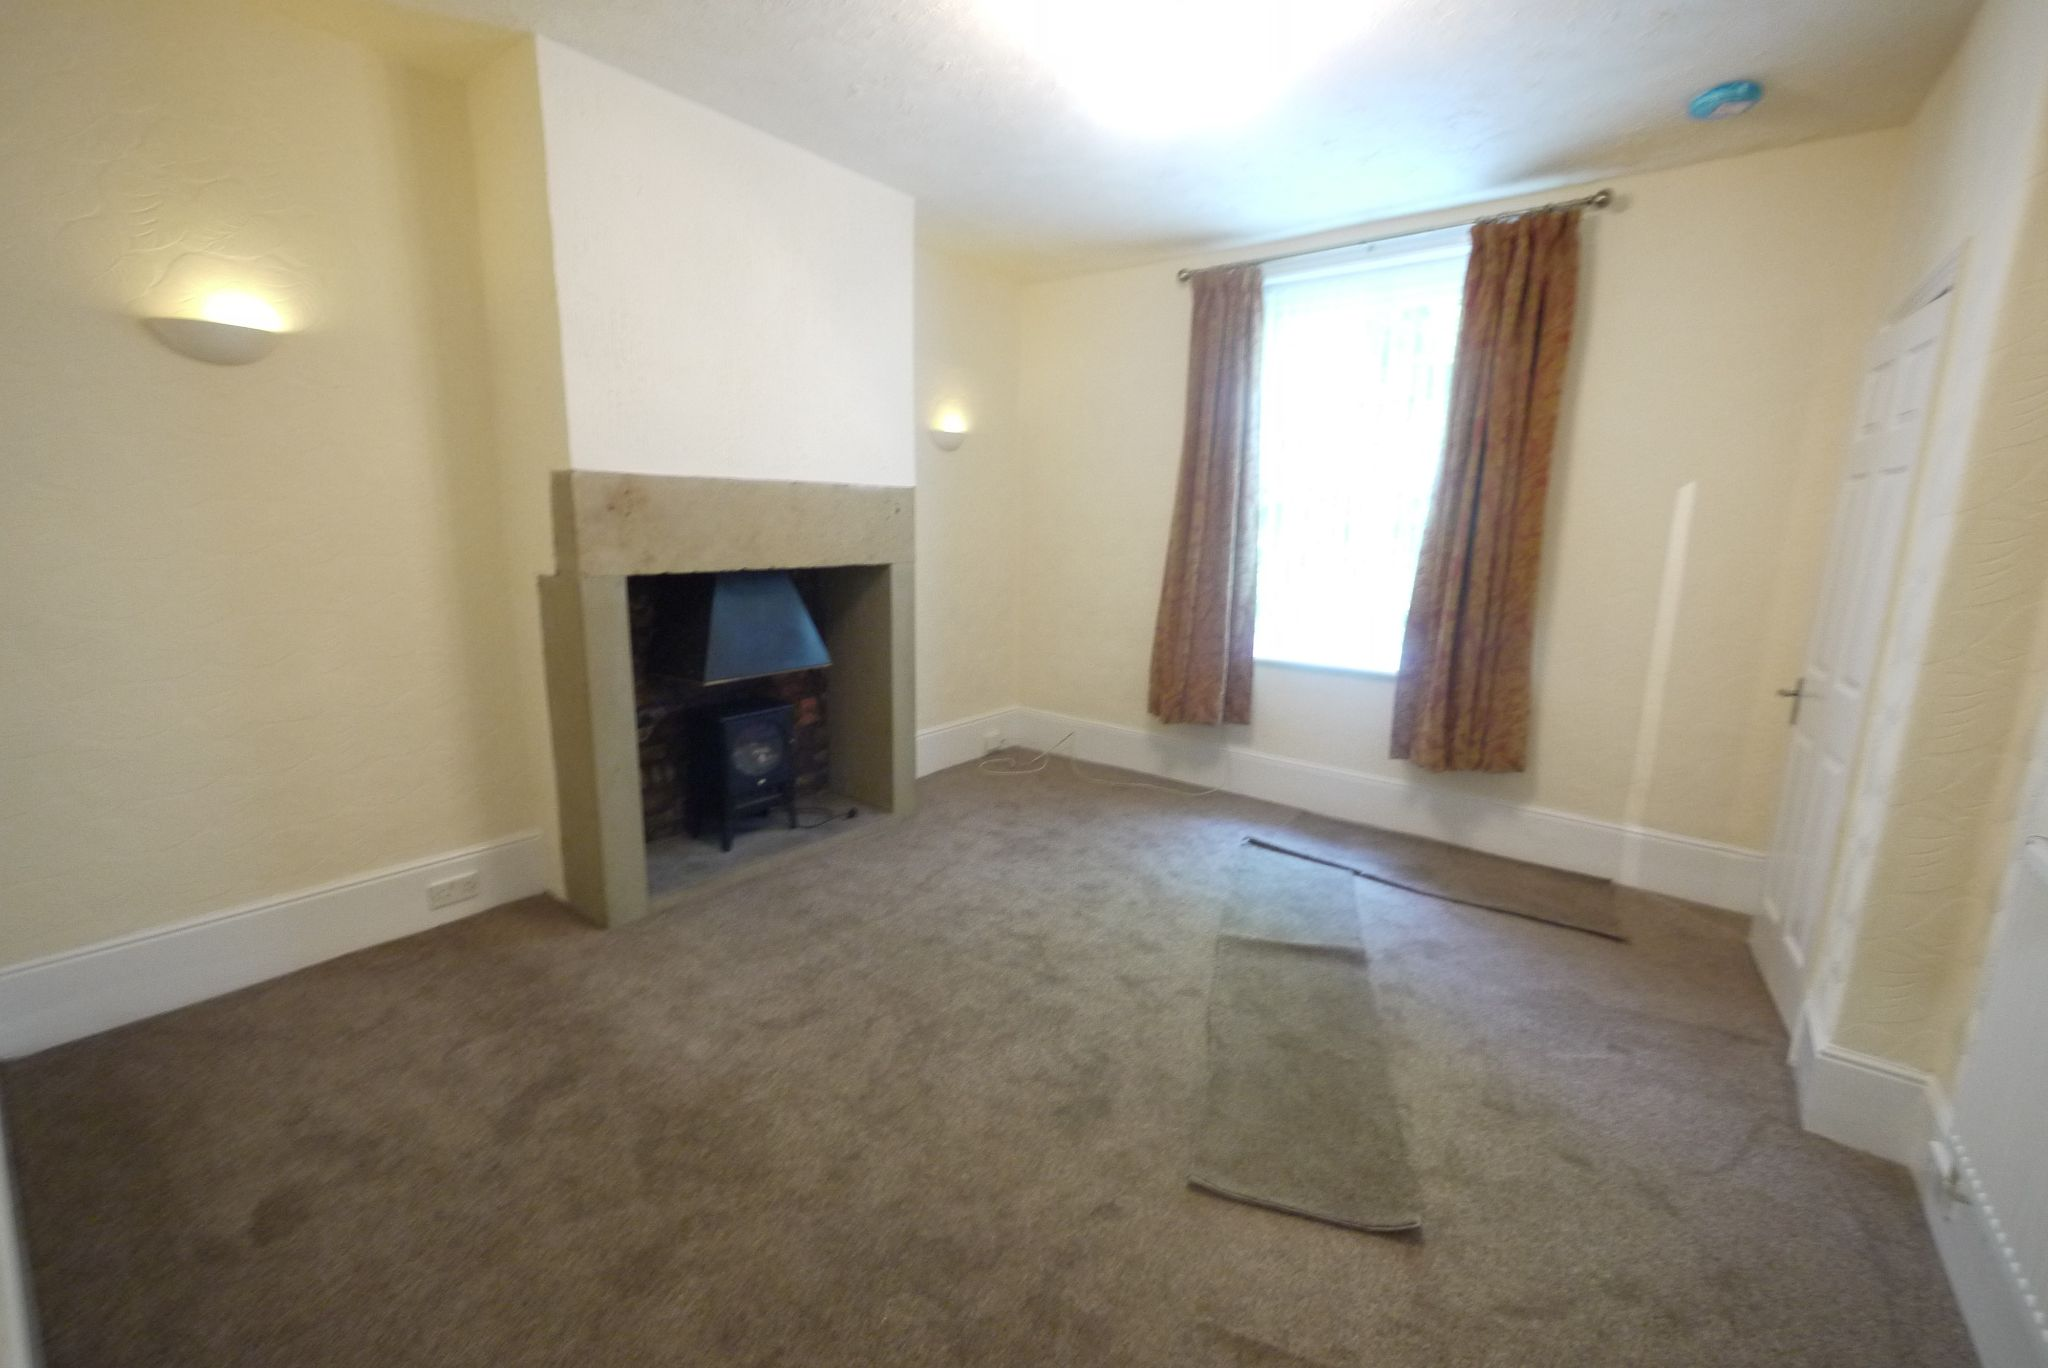 2 bedroom mid terraced house To Let in Halifax - Lounge.